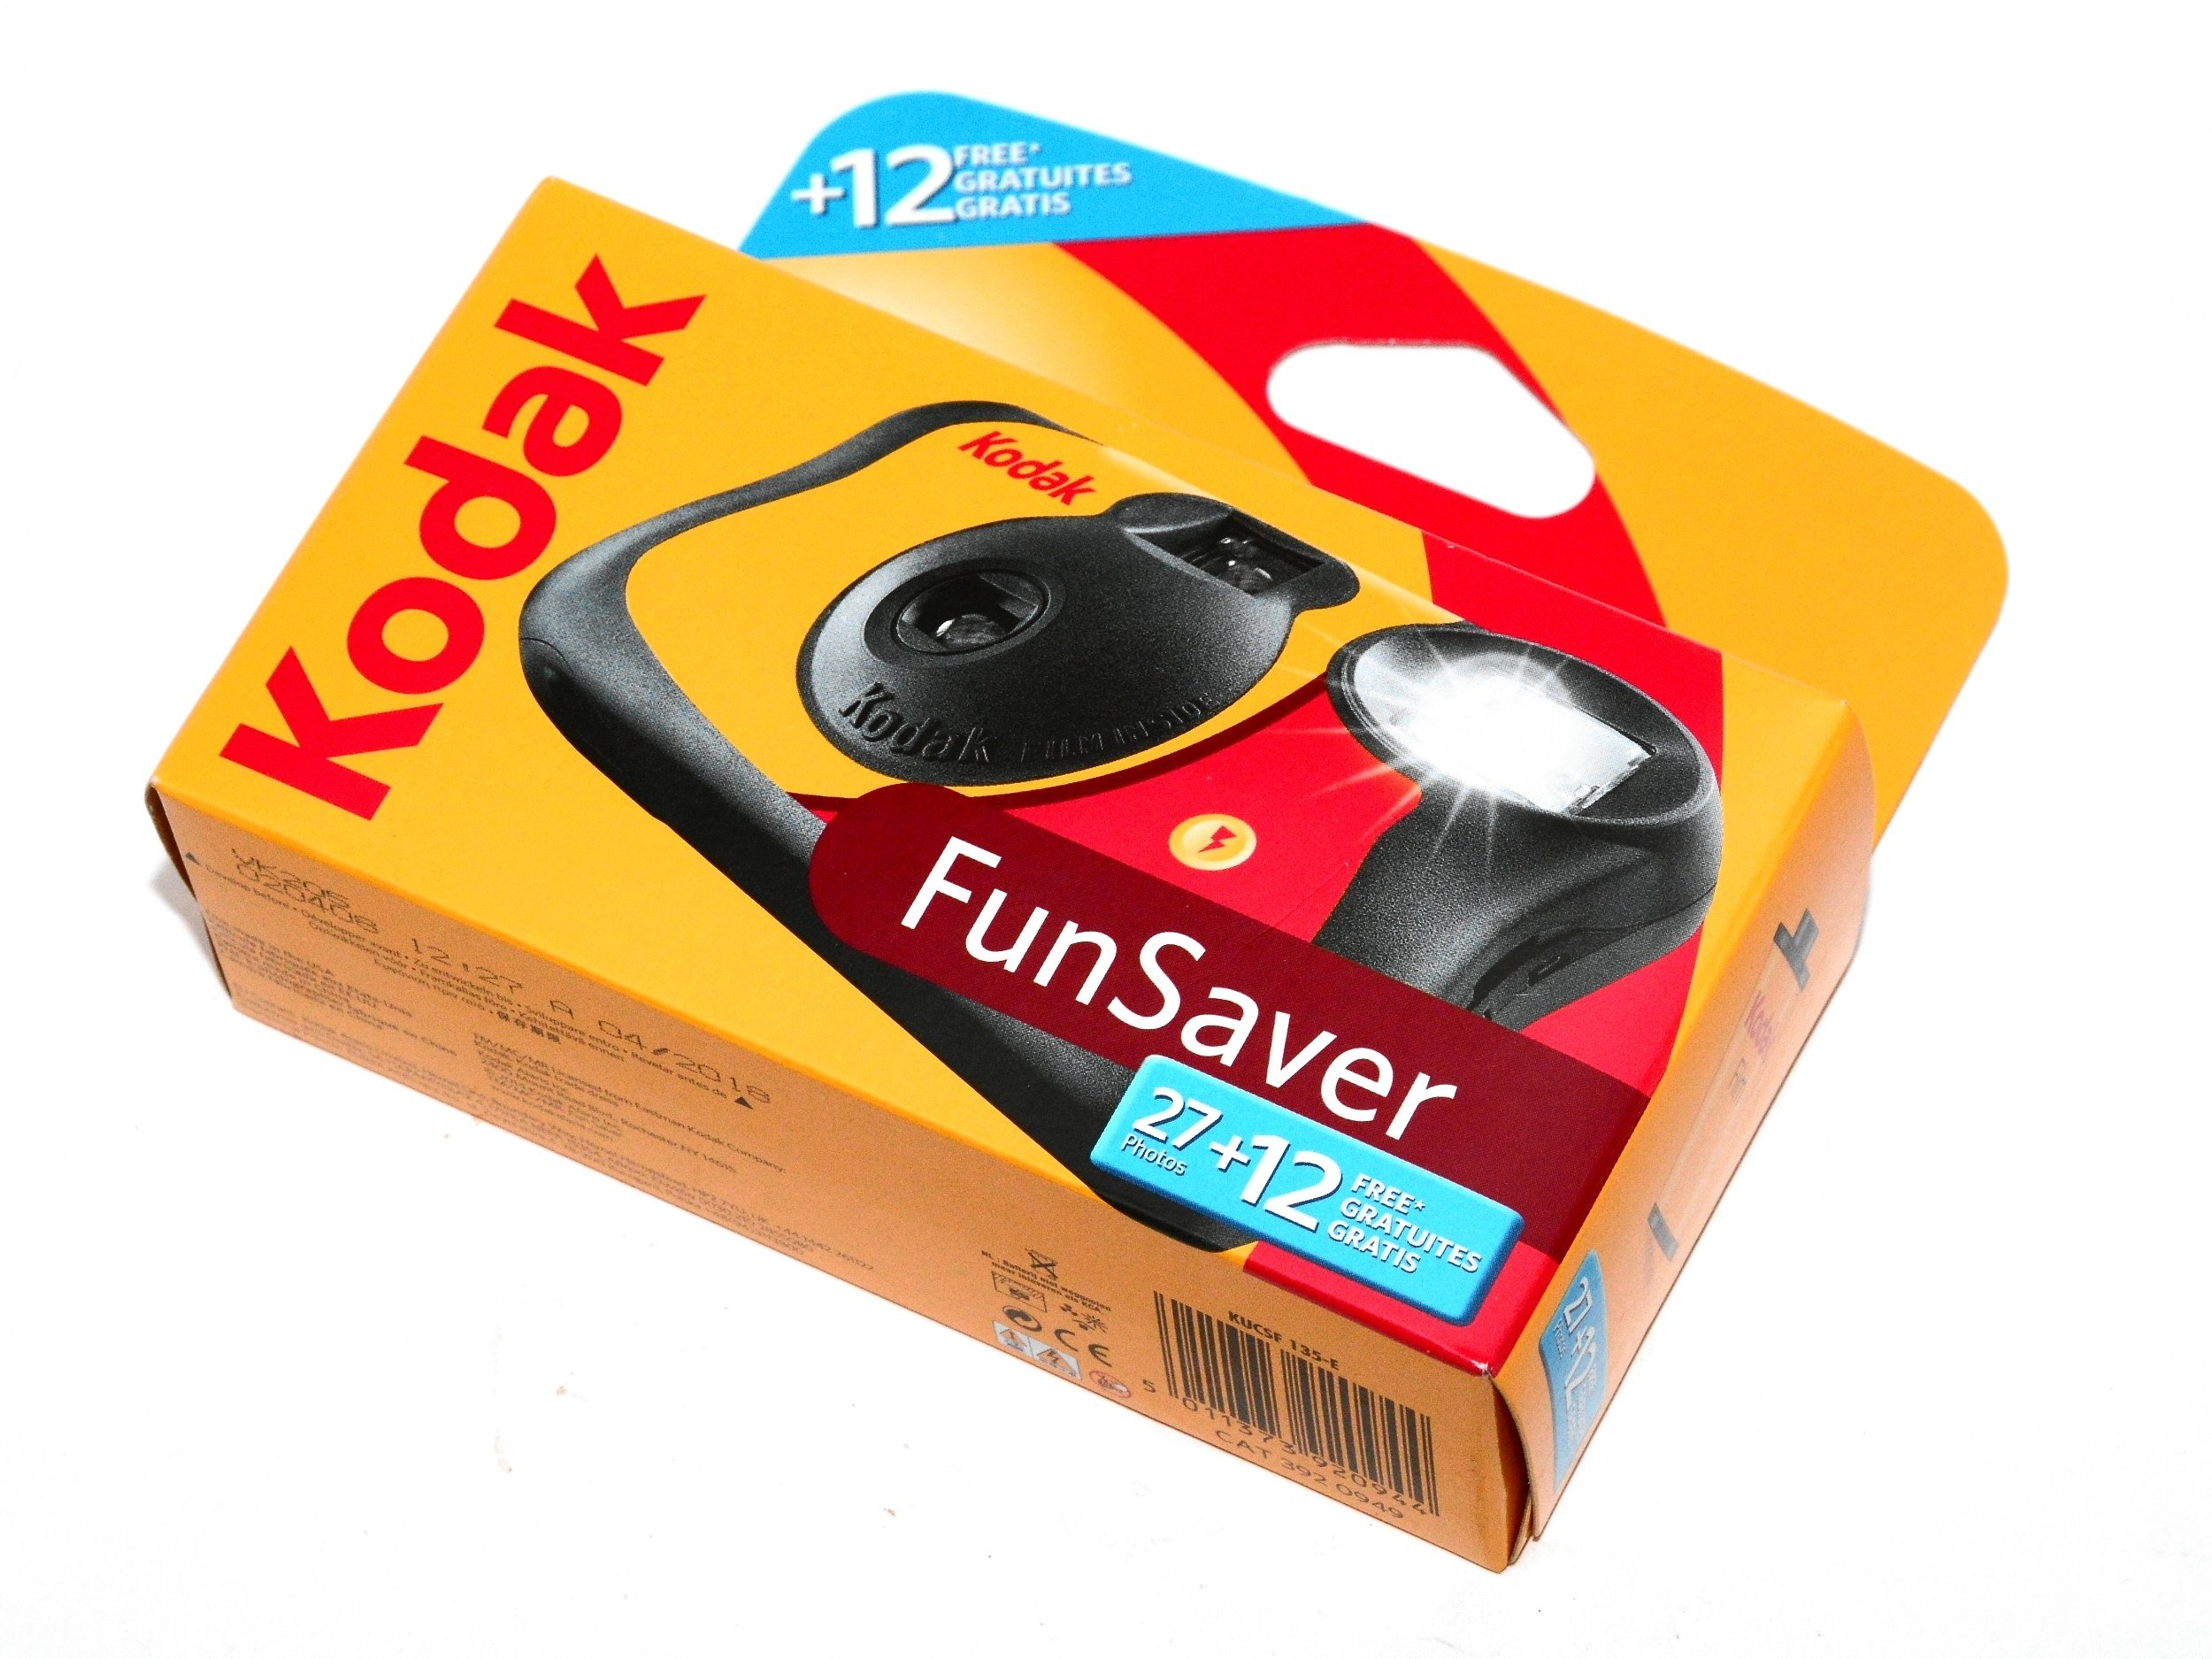 Kodak aparat Fun Saver Flash 400/39 wakacja 07.19